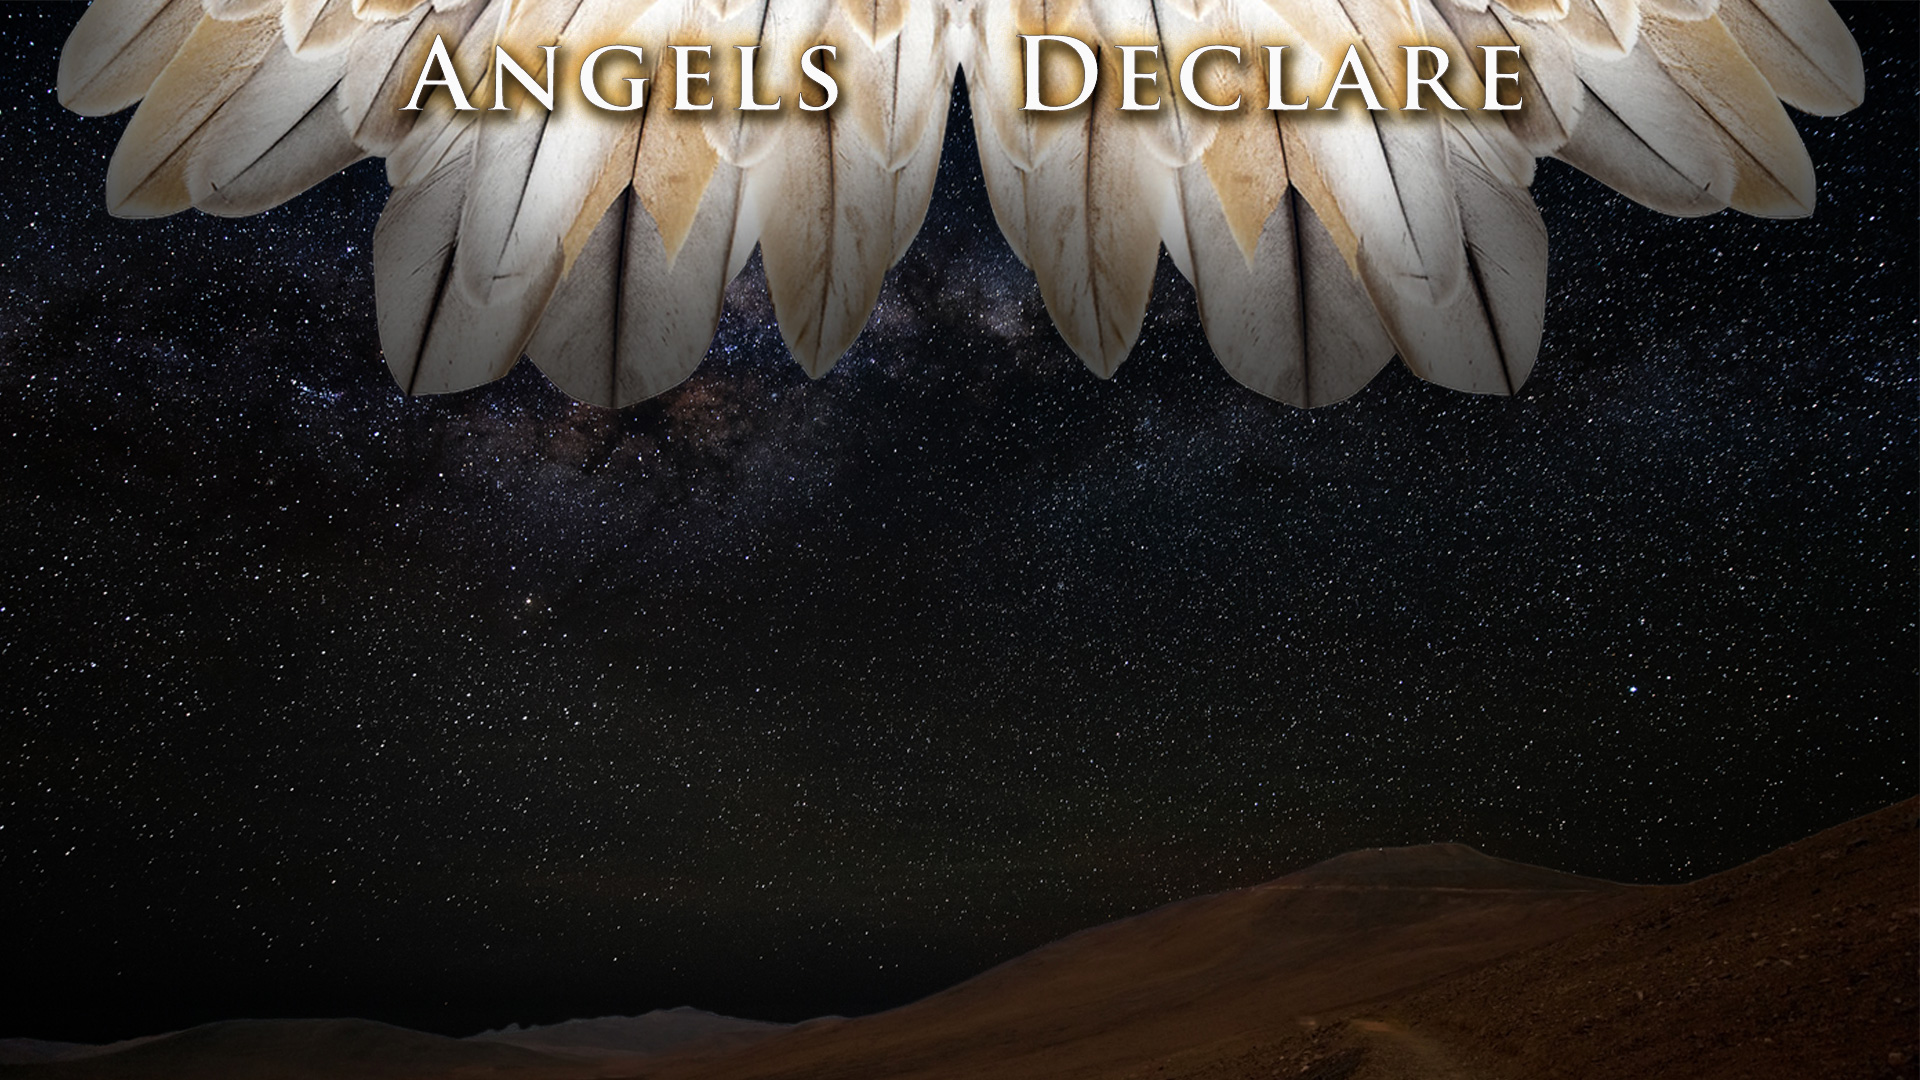 November 27th Begins the first week of Advent. Our Sermon Series, Angles Declare!